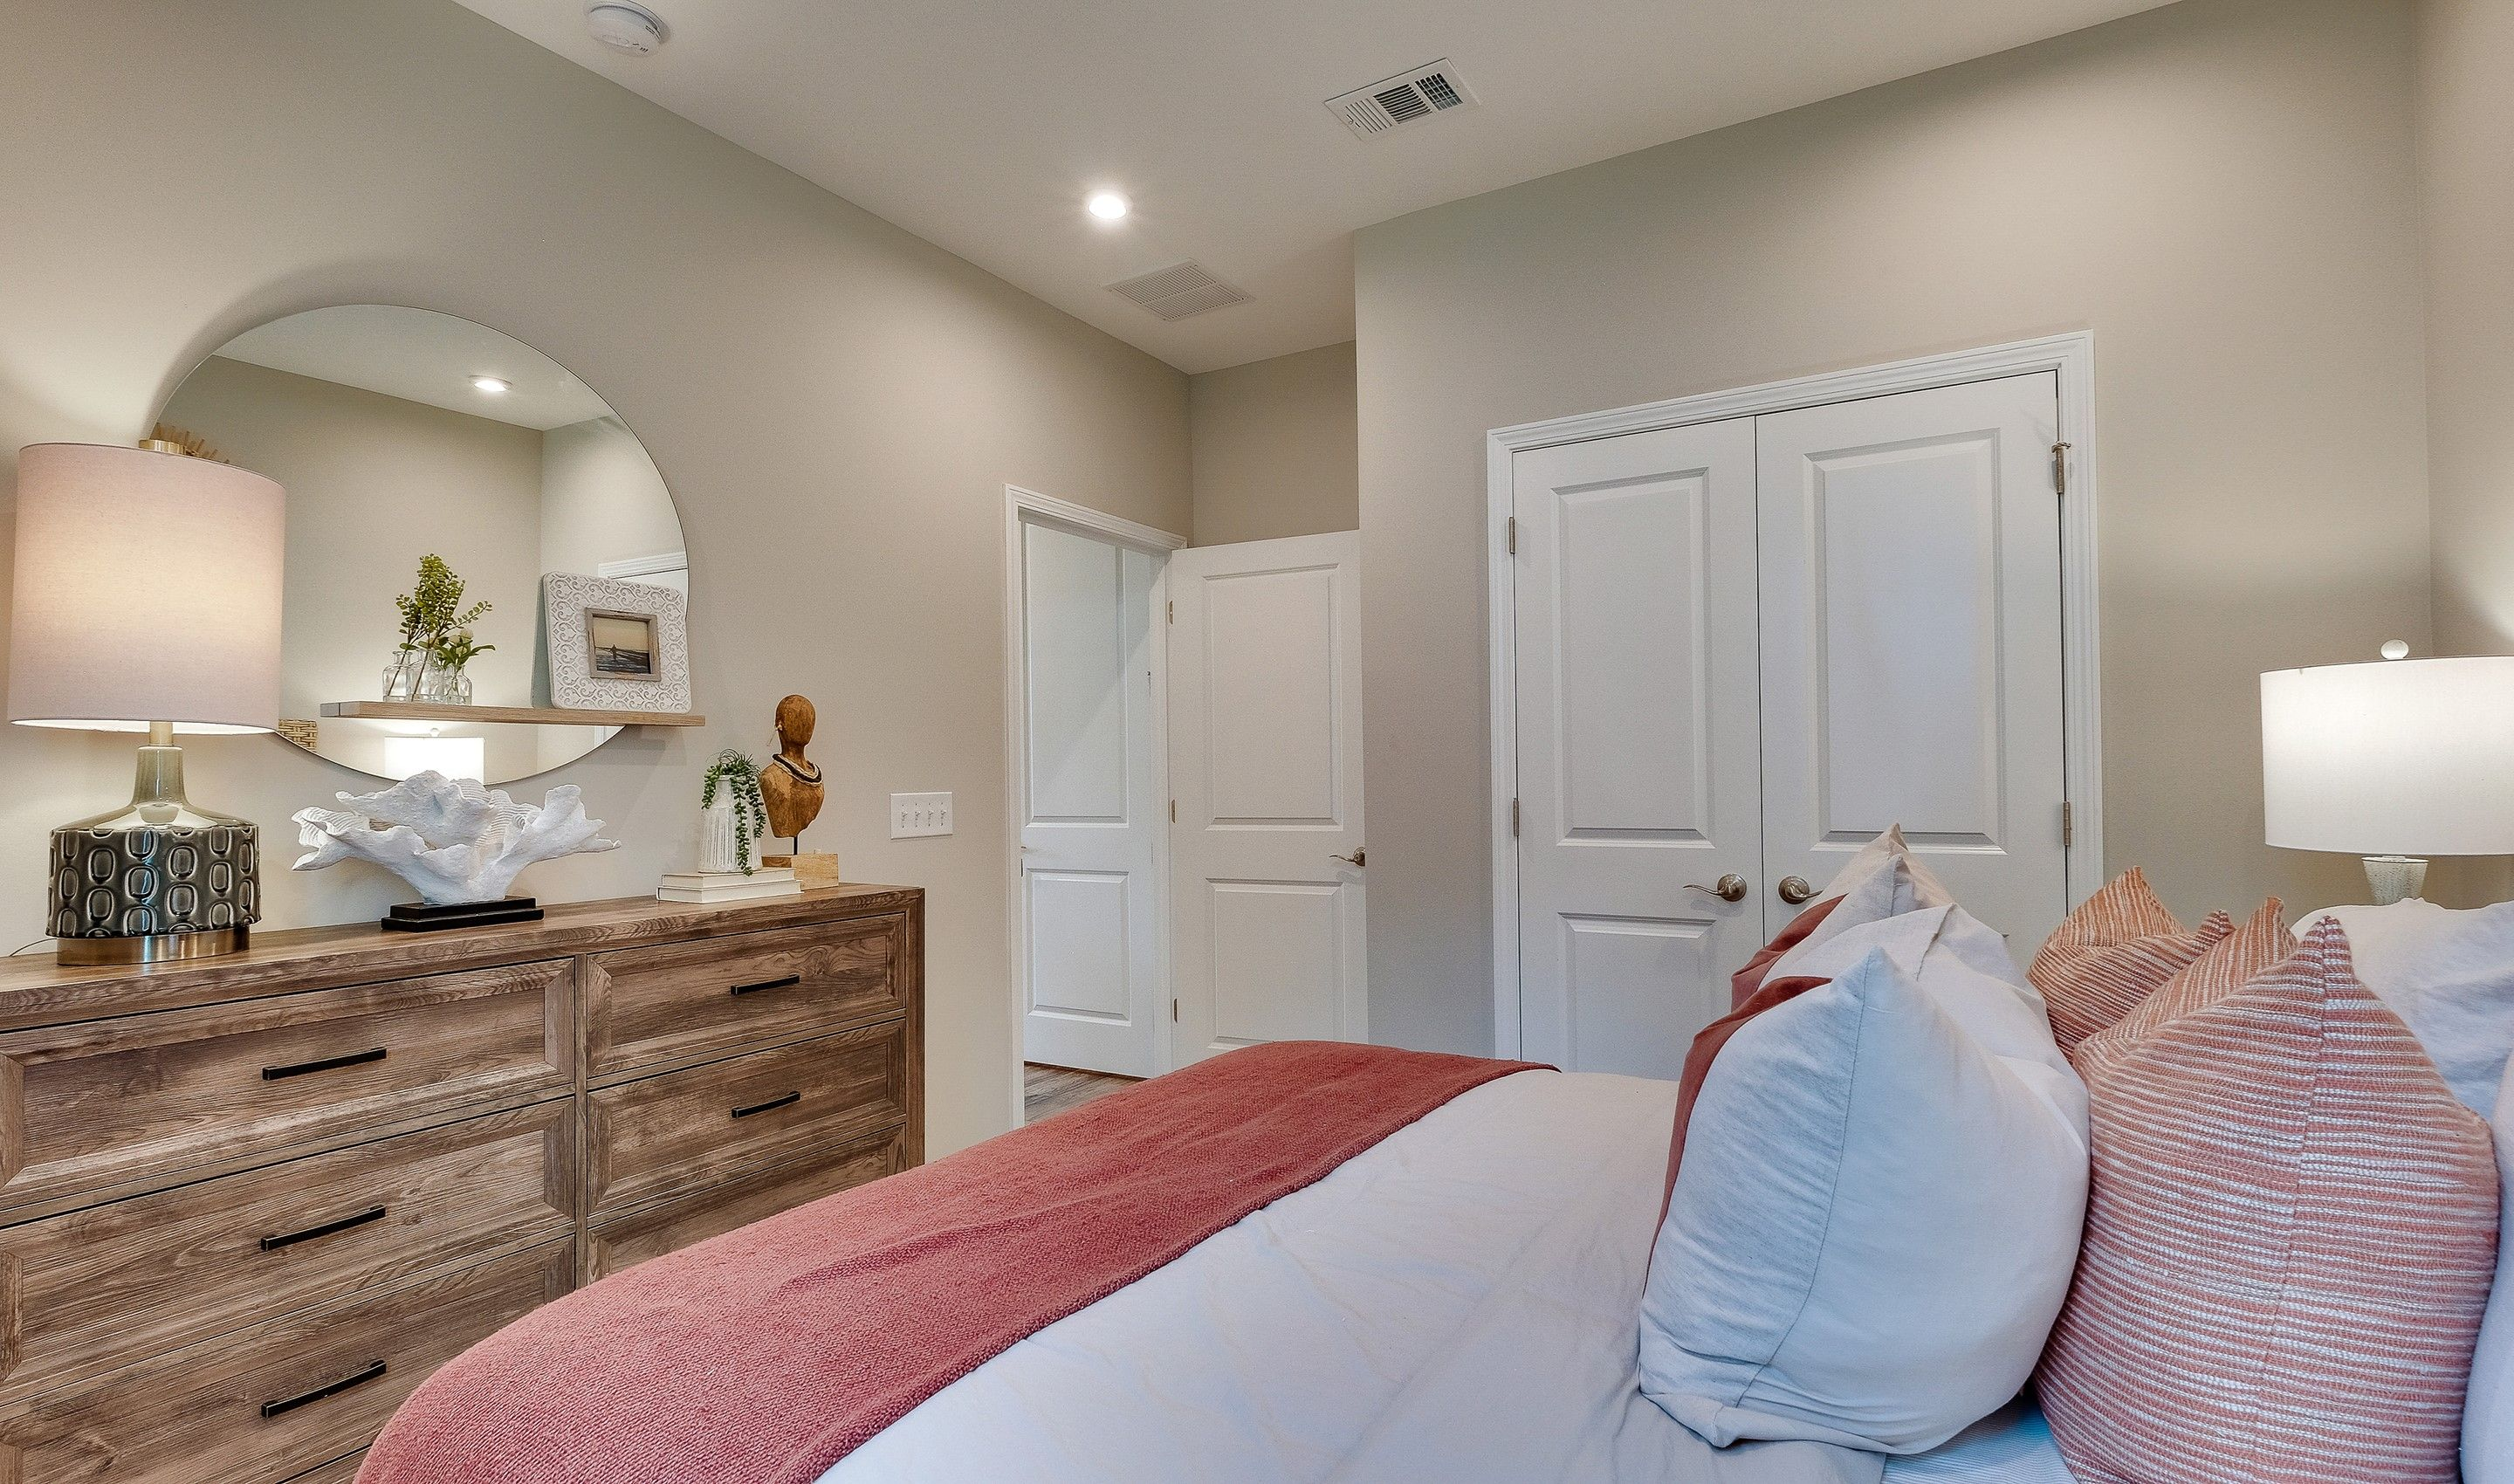 Bedroom featured in the Palmera By K. Hovnanian® Homes in Savannah, GA